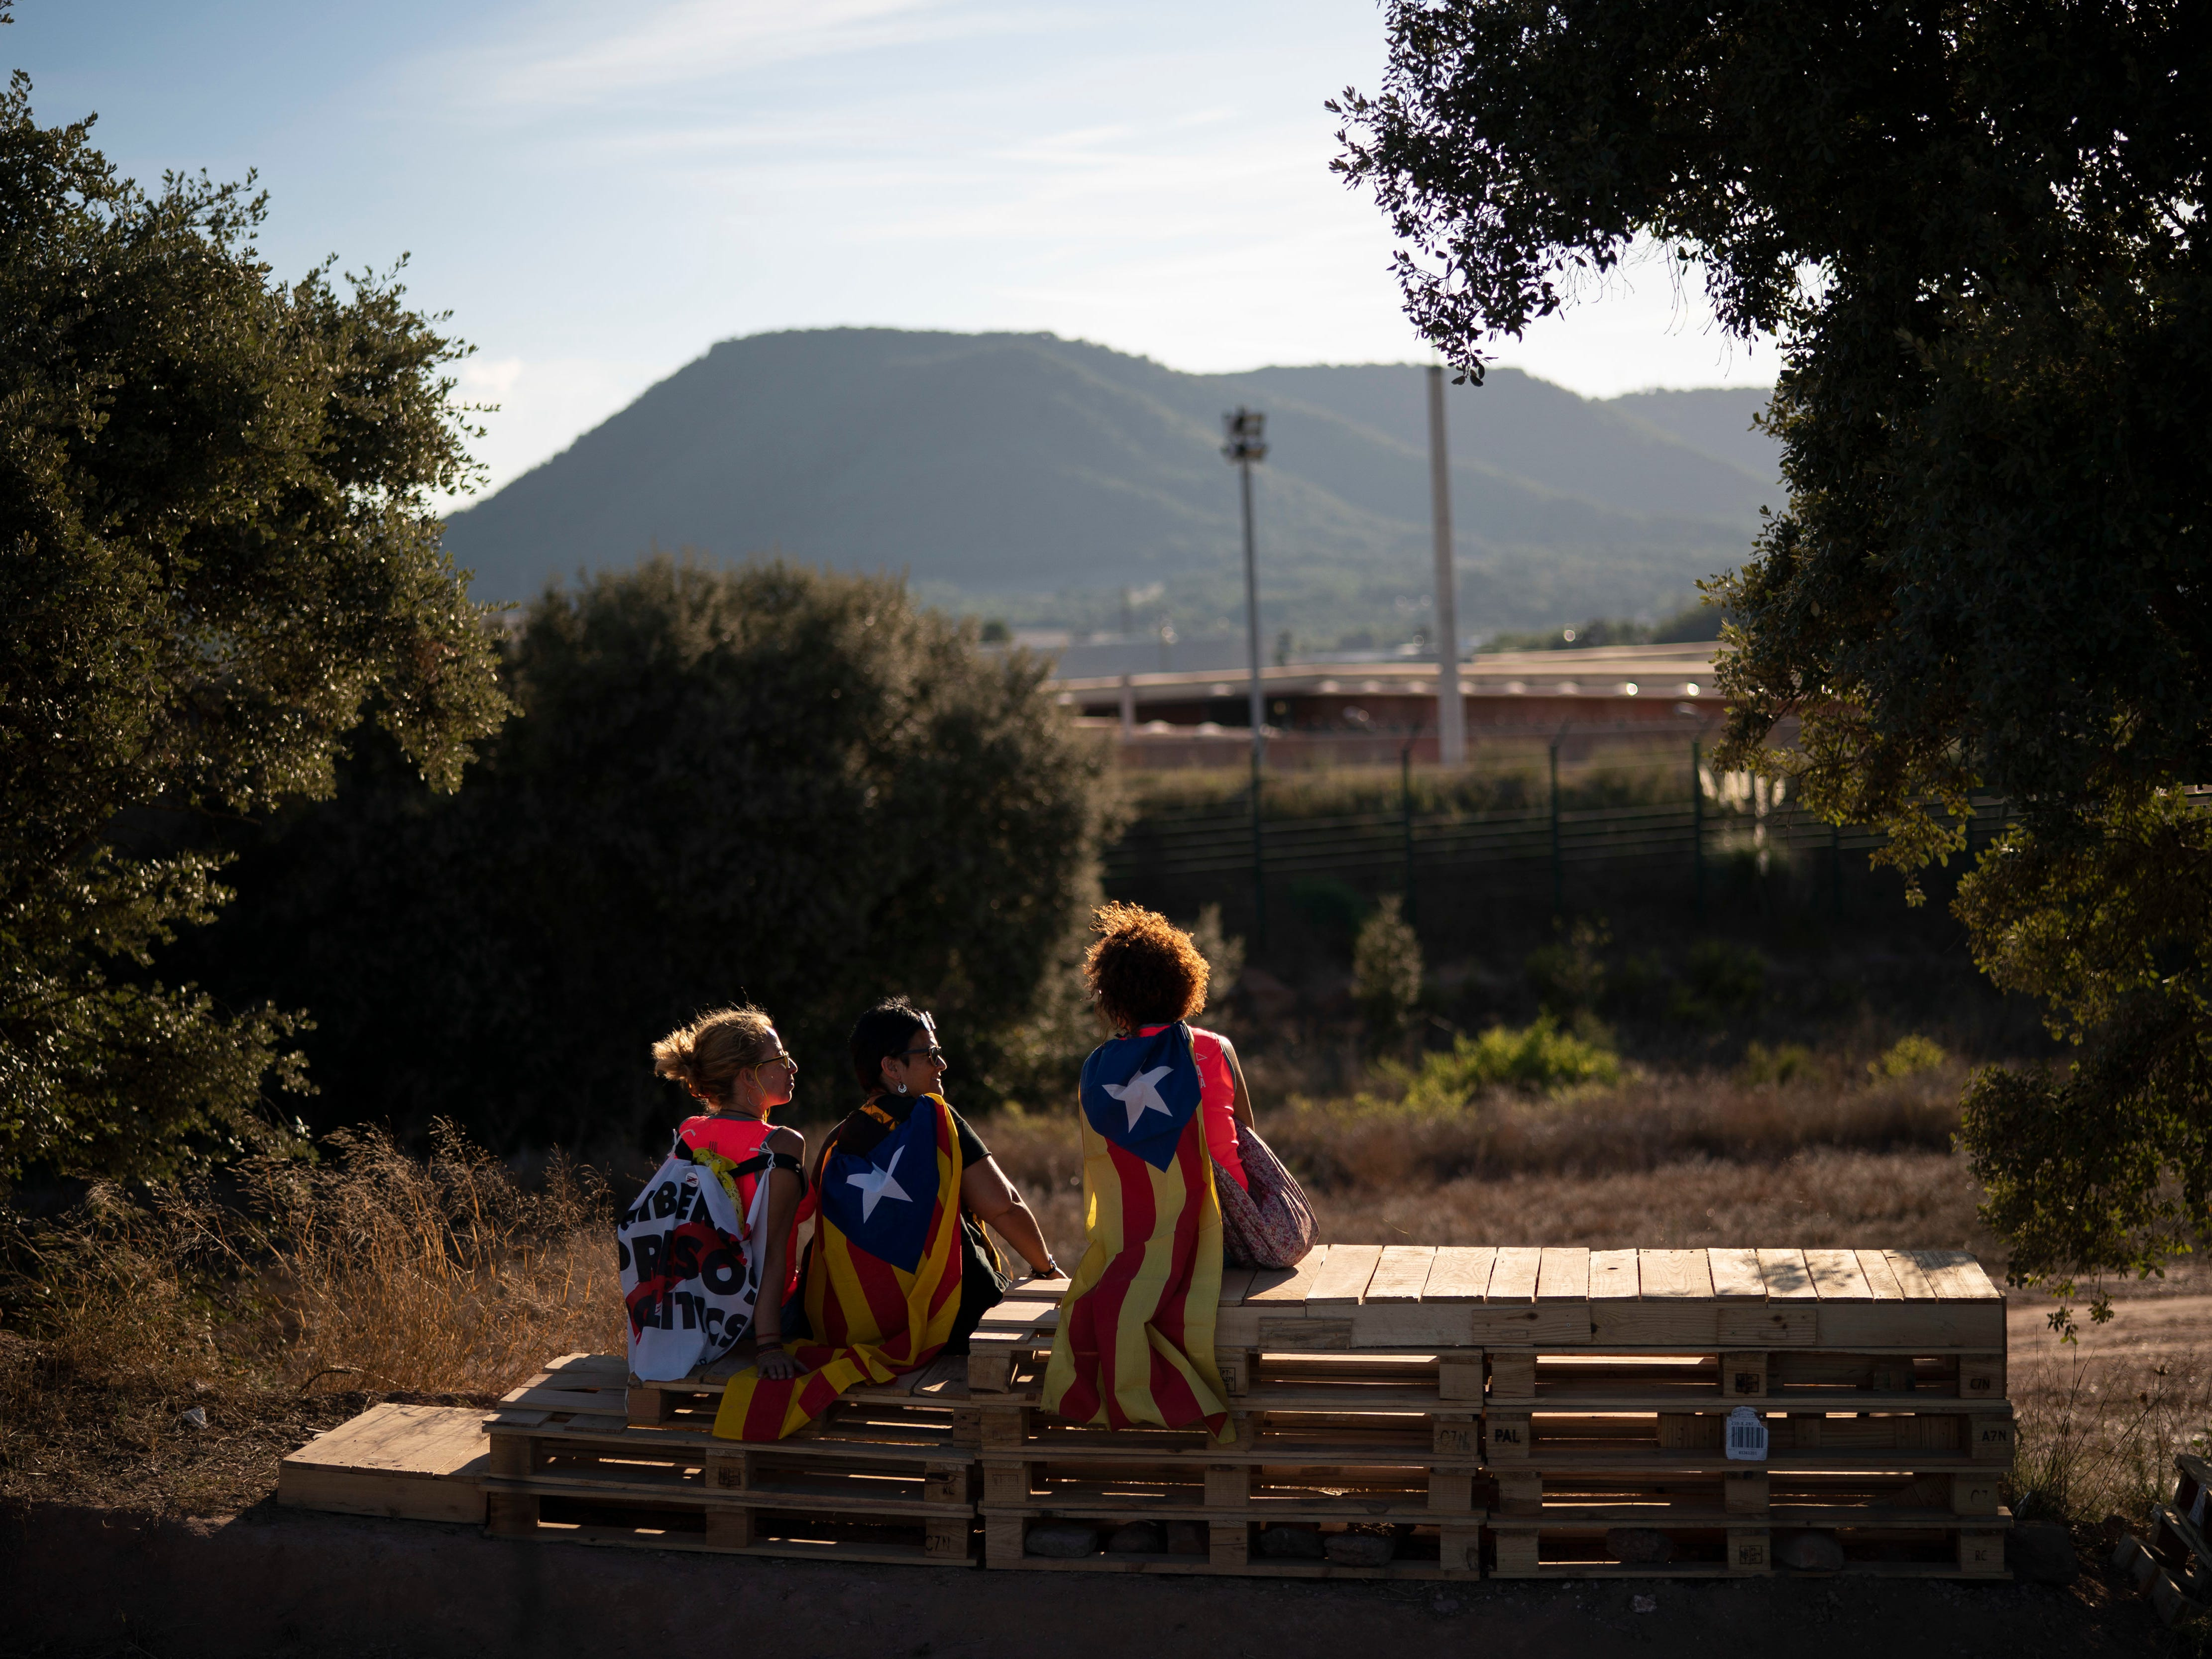 """Pro independence demonstrators, some wearing """"esteladas"""" or independence flags, sit in a field overlooking the Lledoners prison in Sant Joan de Vilatorrada, about 30 miles from Barcelona, Spain, Sunday, Sept. 30, 2018. Hundreds of Catalonia residents gathered near the Lledoners prison, where most prominent jailed separatists are awaiting trial, to mark nearly one-year since an unauthorized independence referendum was held in this region of Spain last year."""